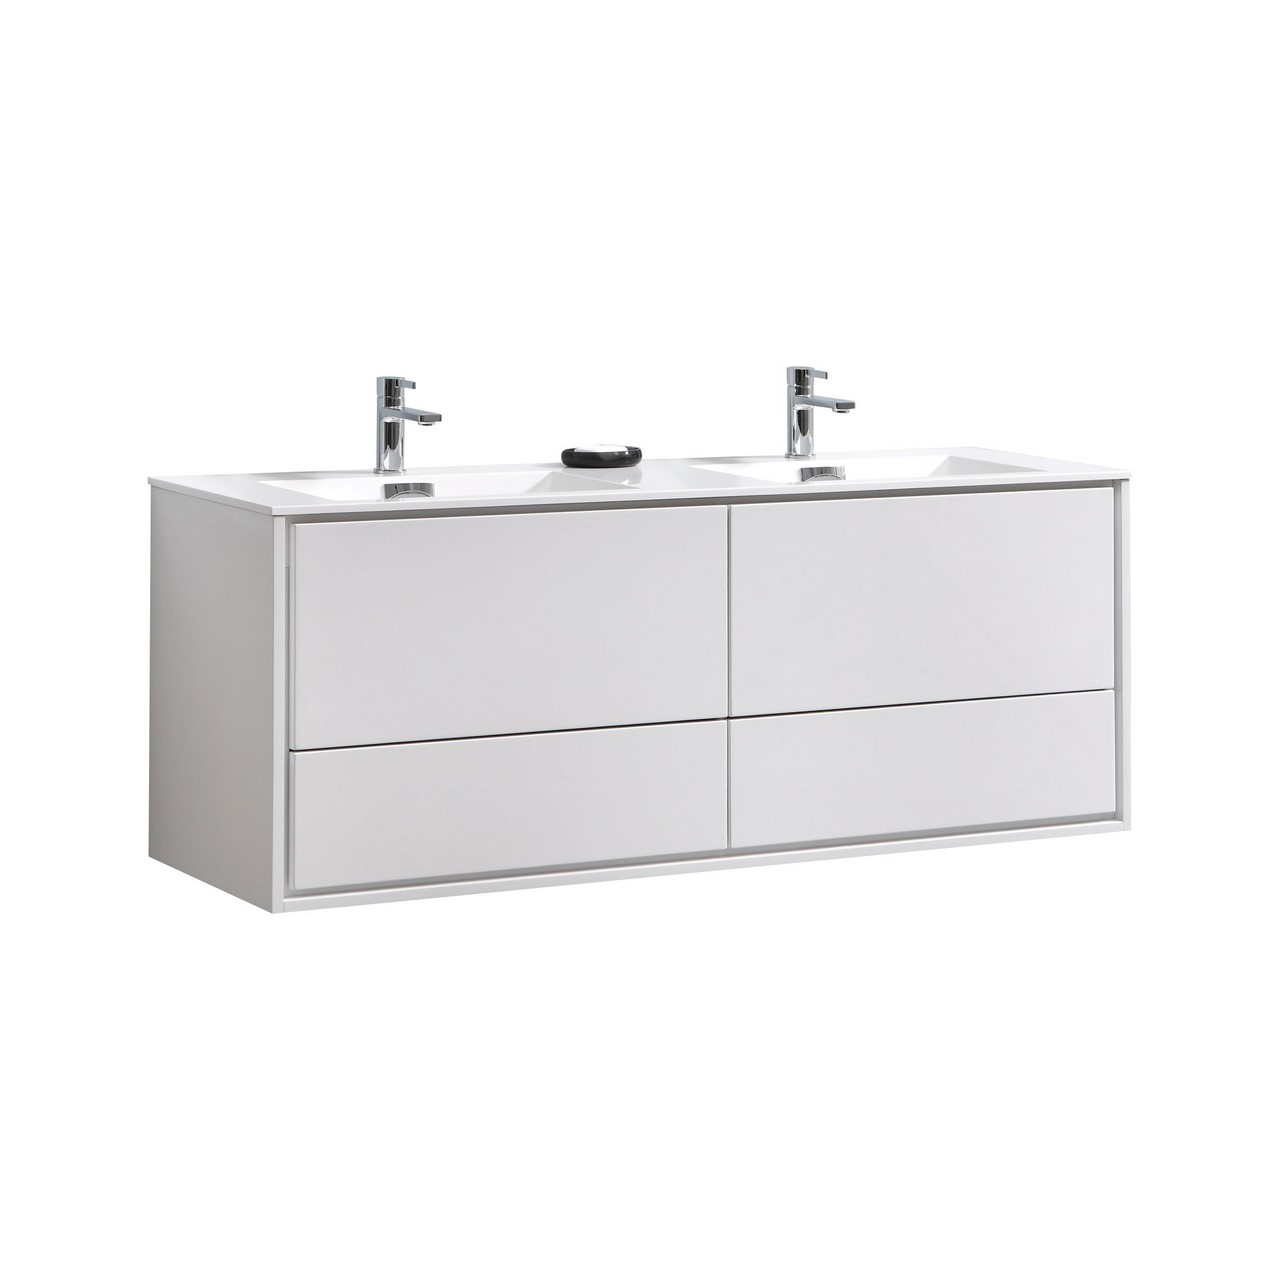 De Lusso 60 Double Sink High Glossy White Wall Mount Vanity